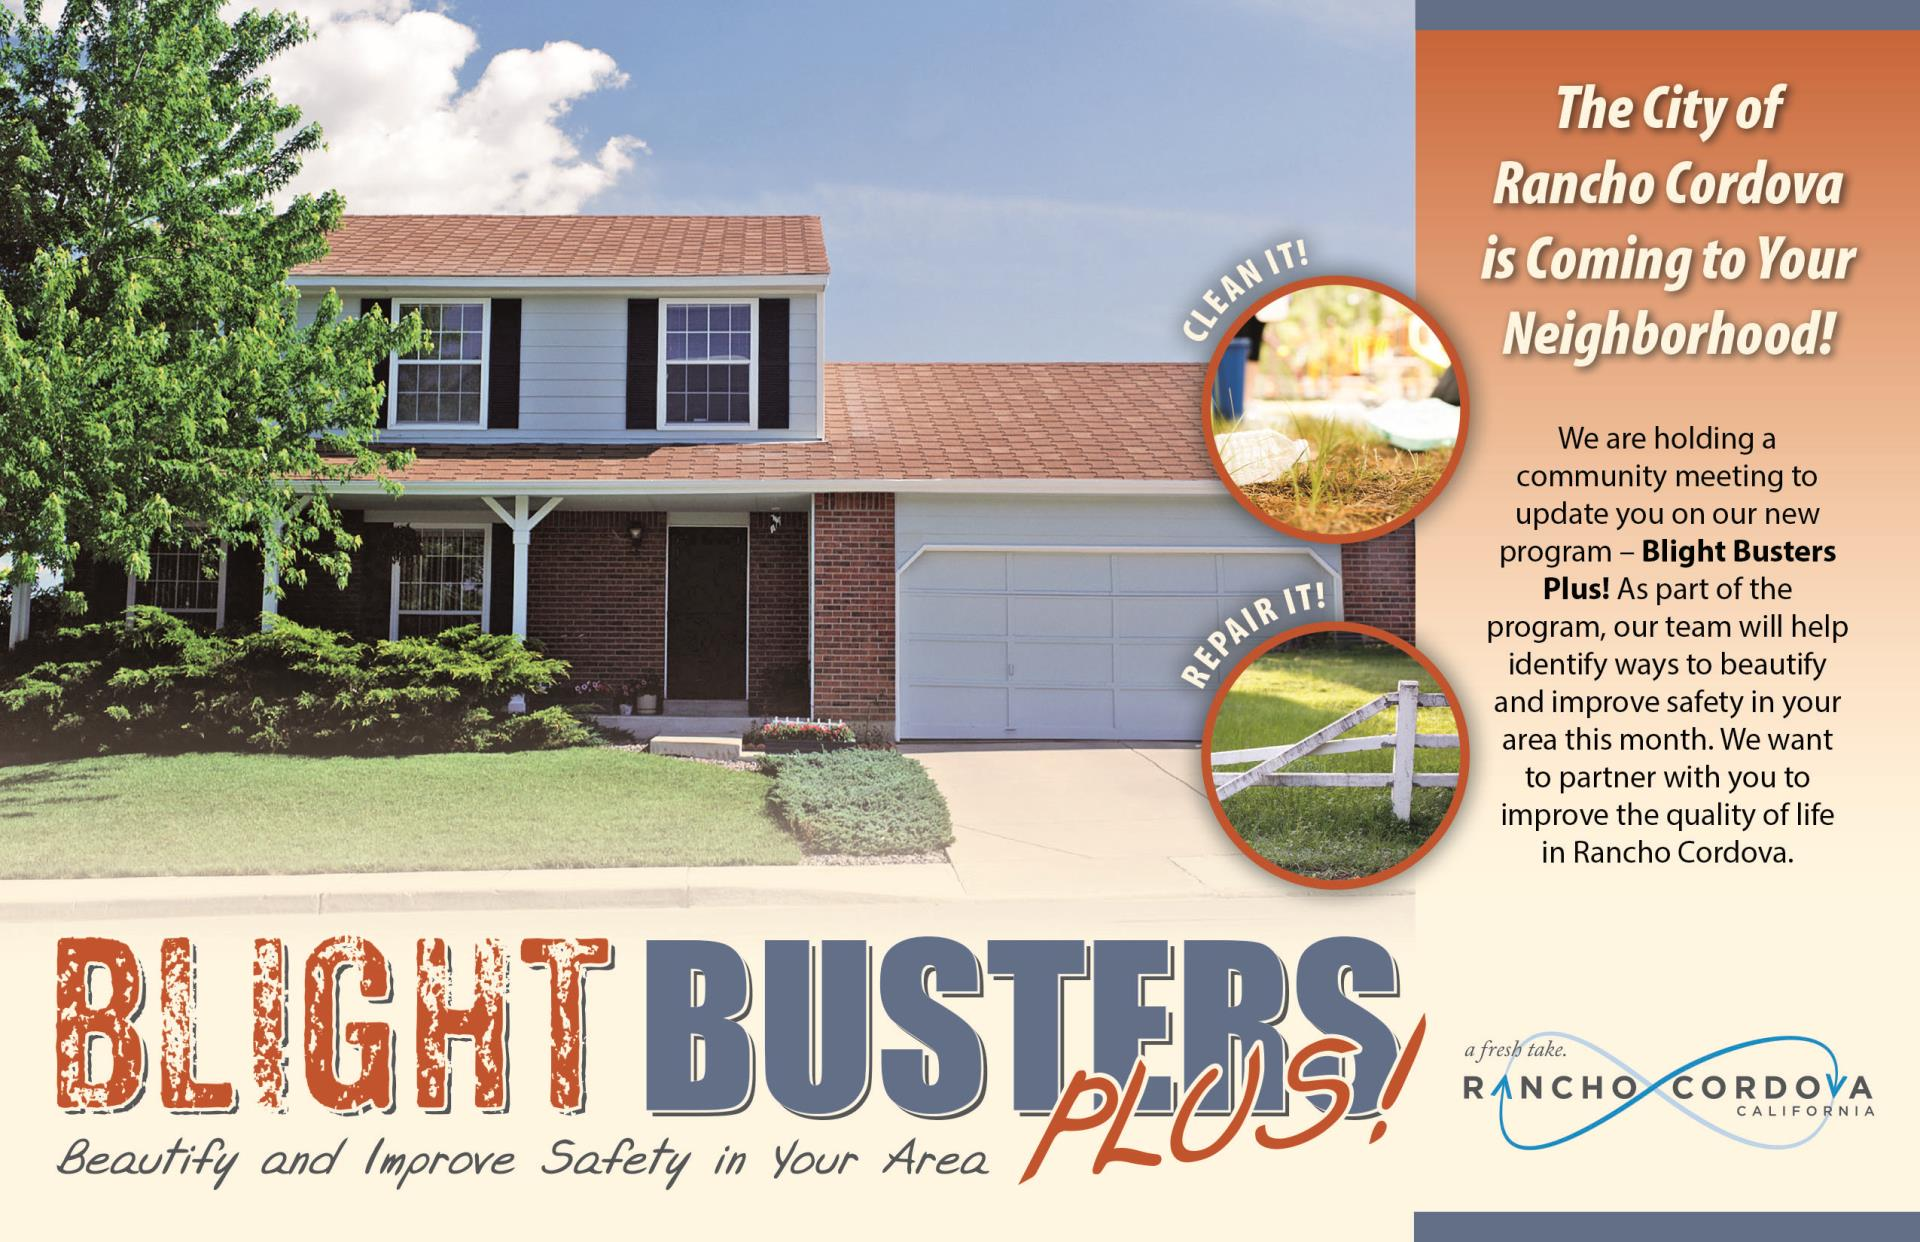 Informational image for Blight Busters Plus - Beautify and Improve Safety in Your Area